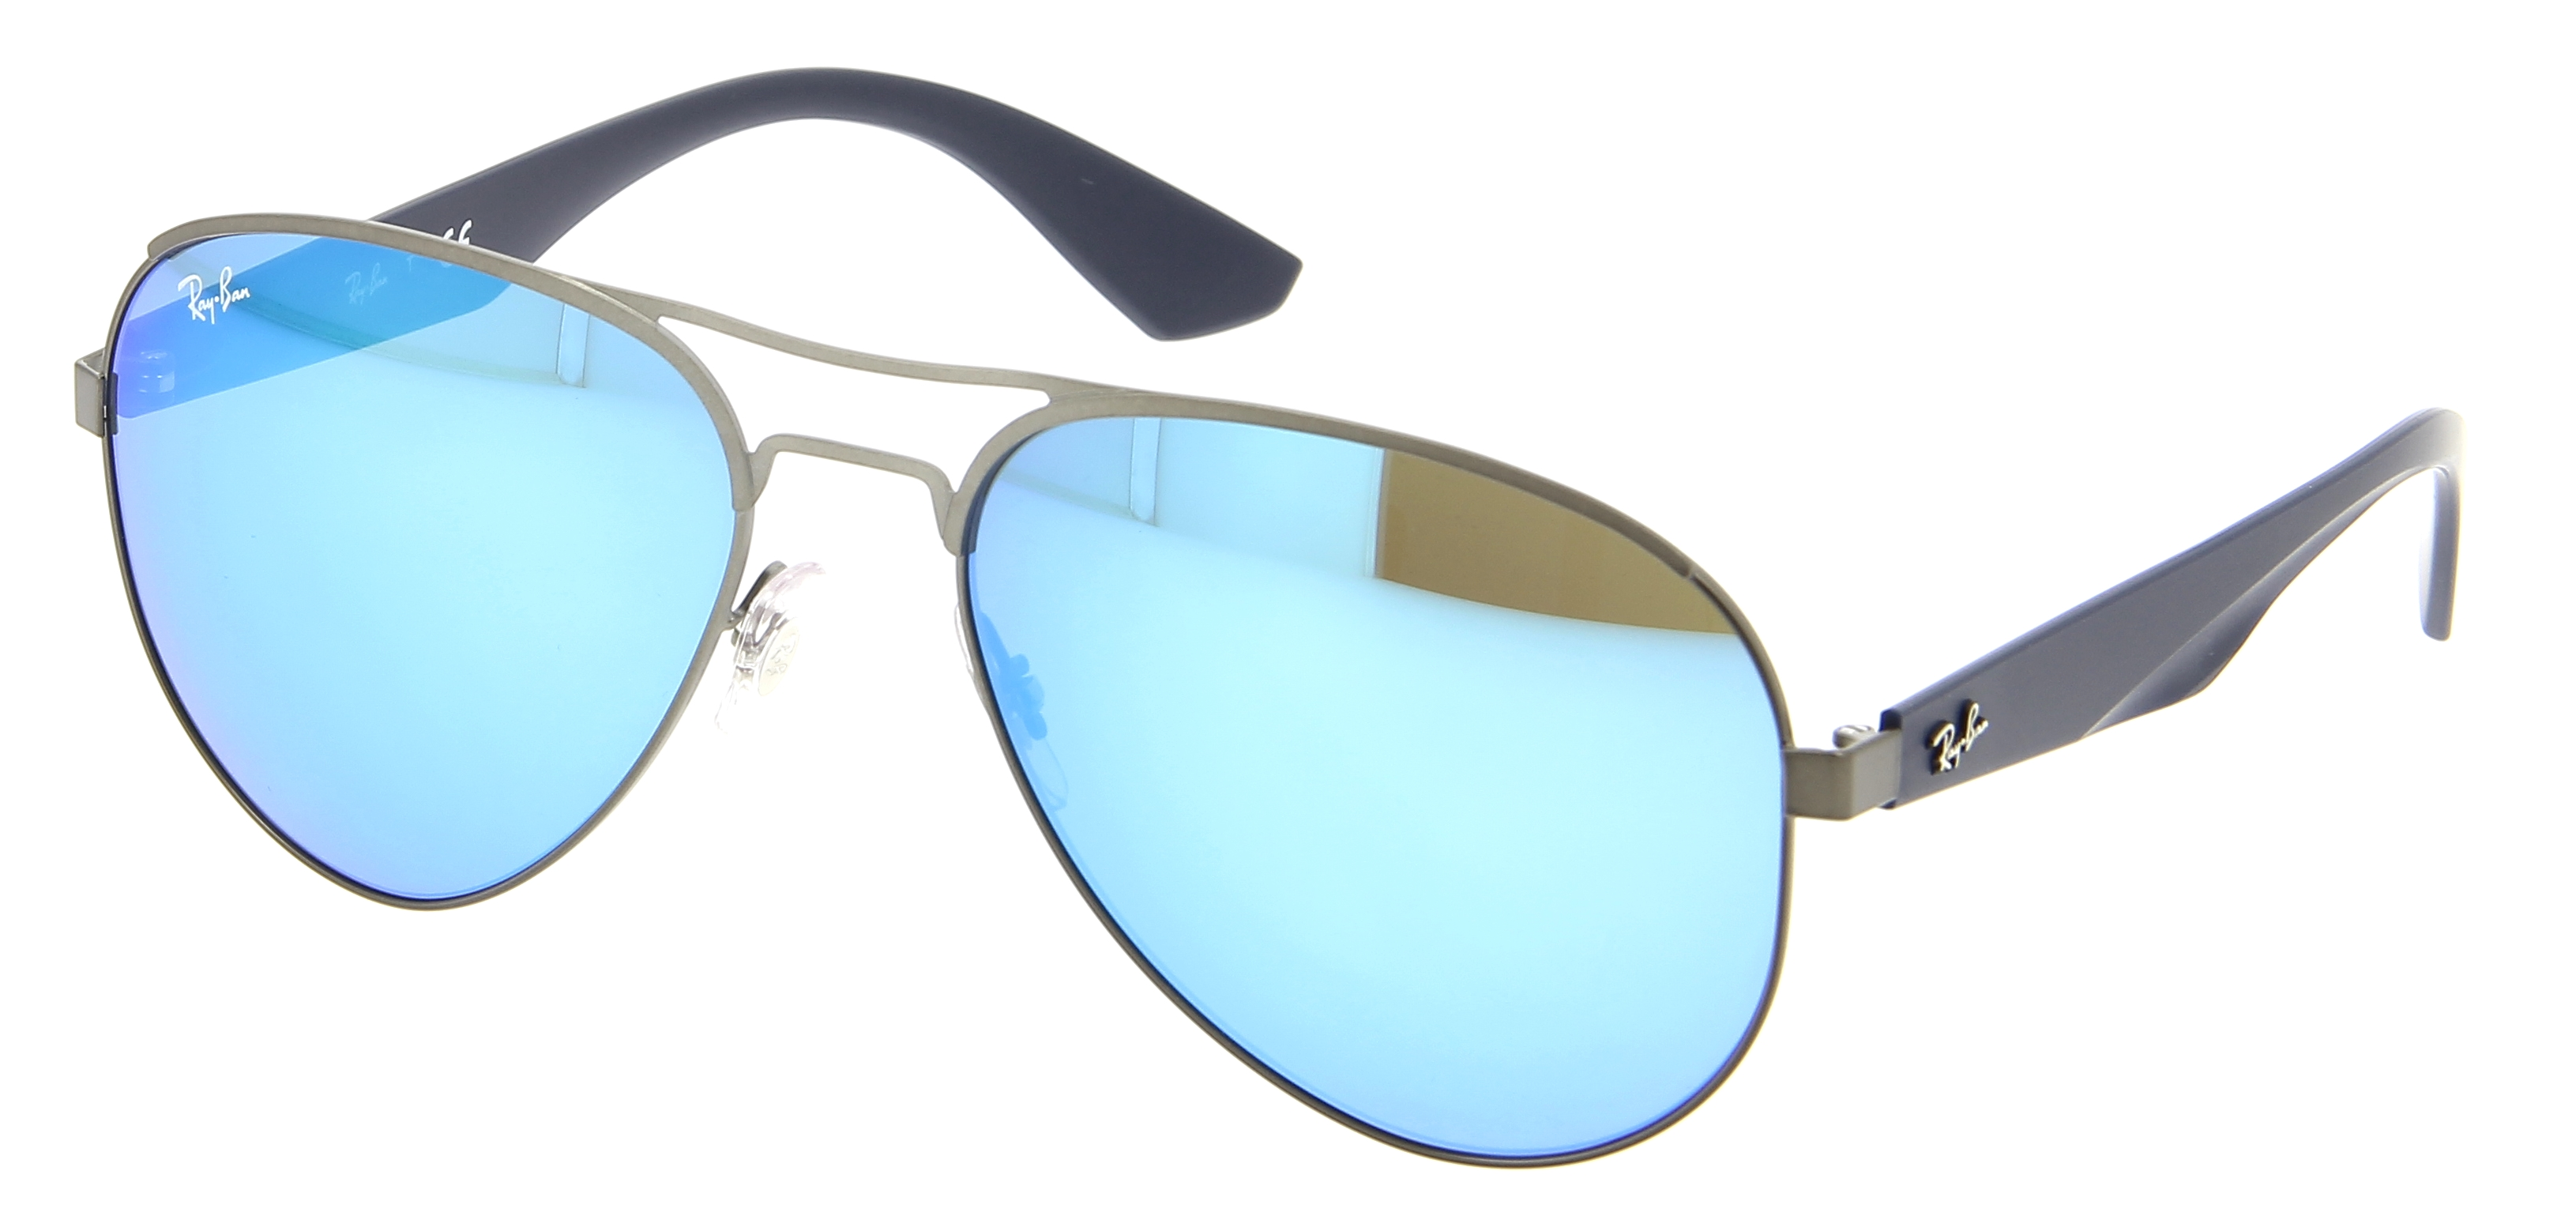 Ray Ban Clubmaster Pas Cher Optical Center